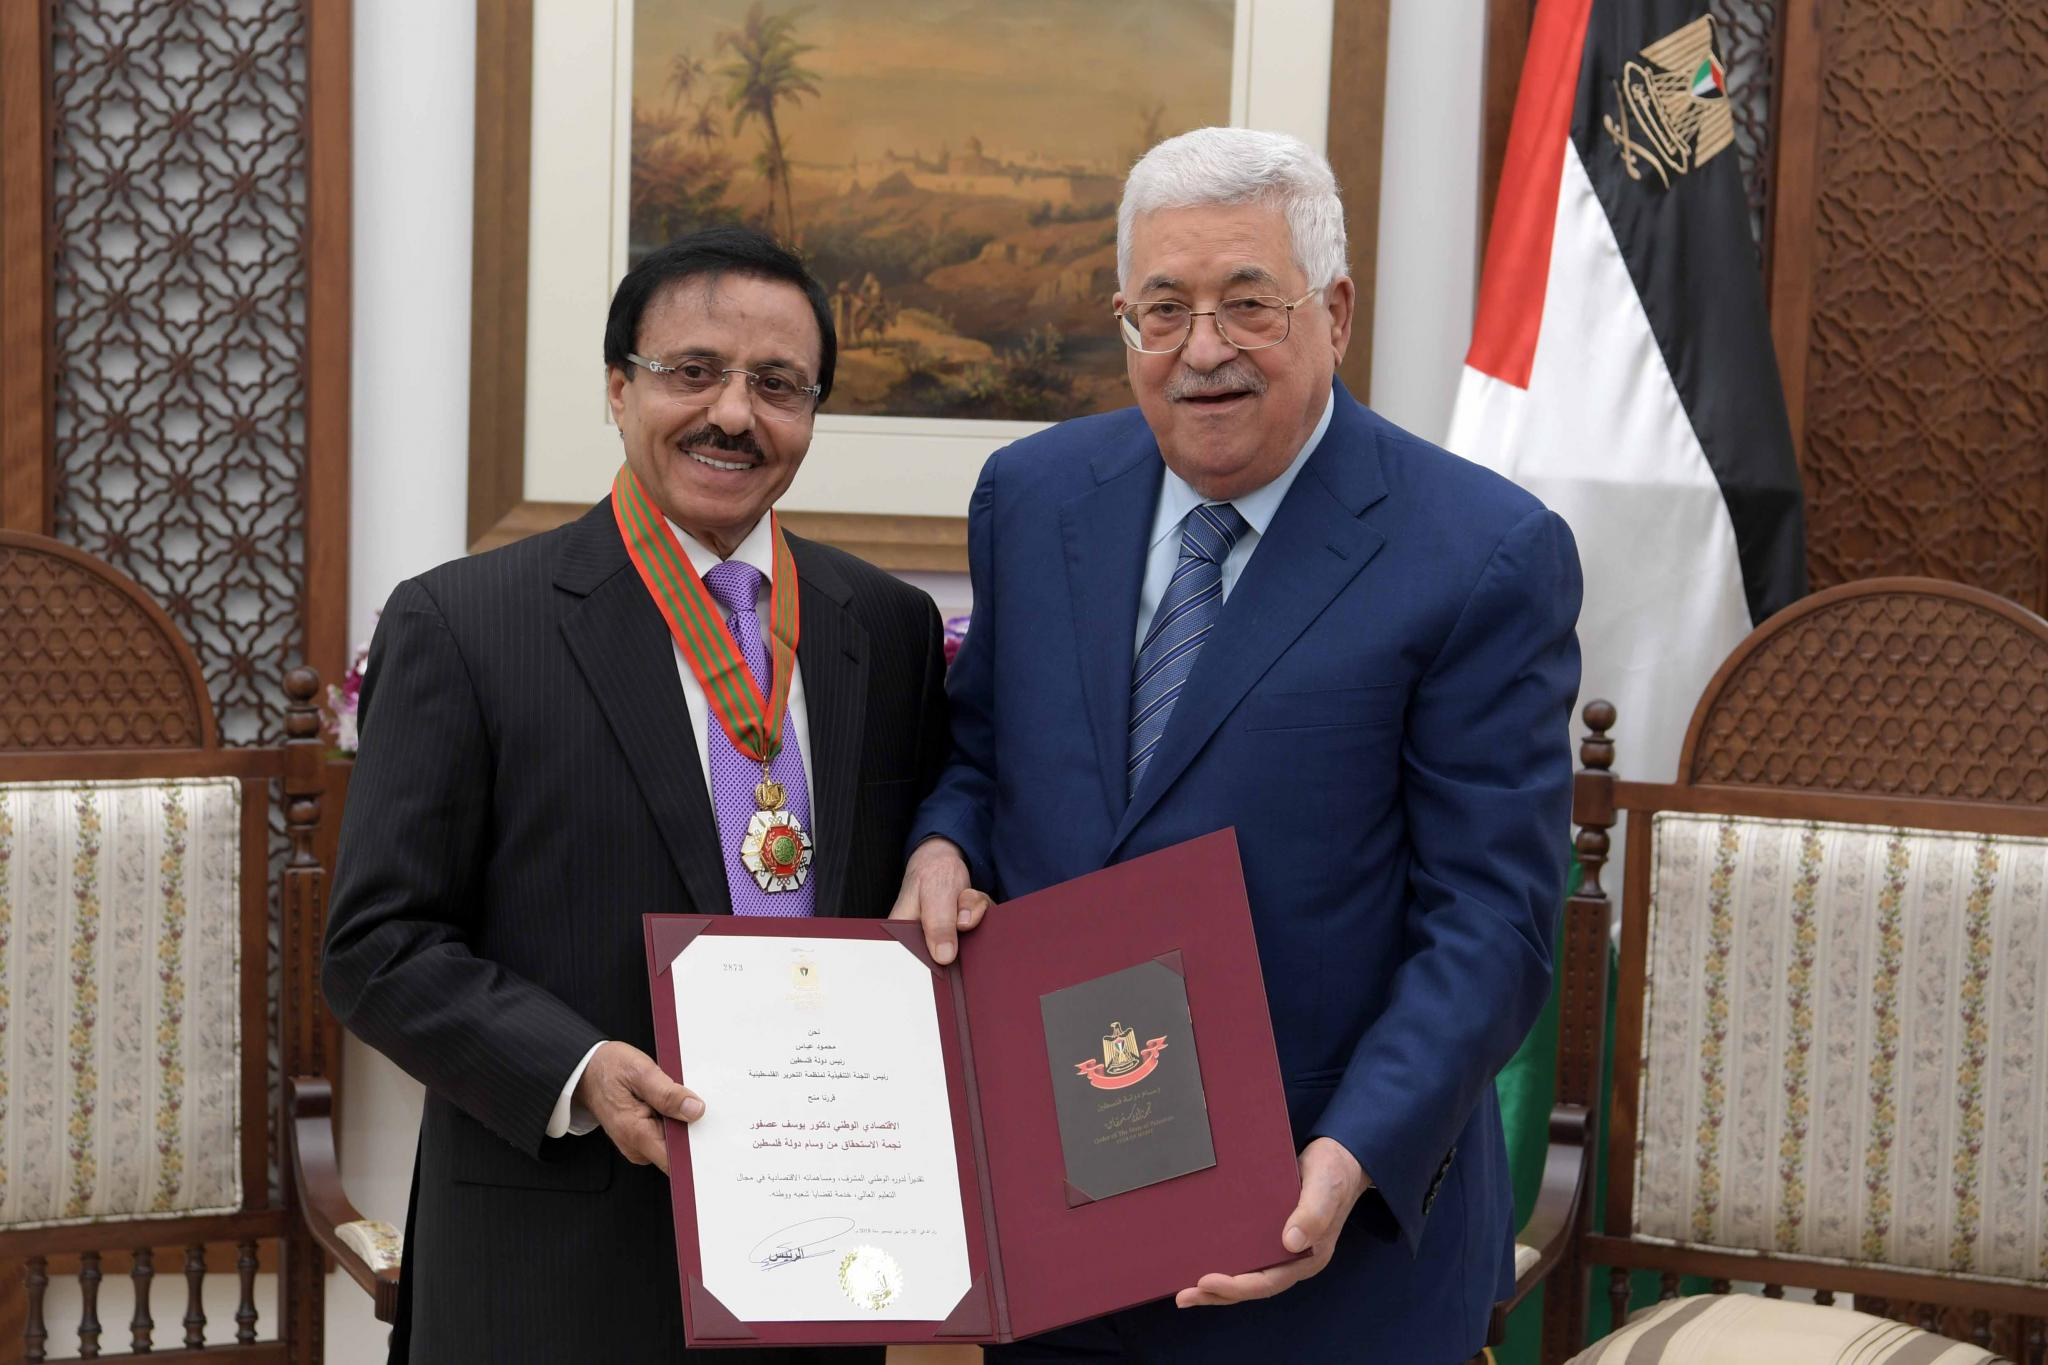 the president honors the national economic asfour the merit star from the medal of the palestinian